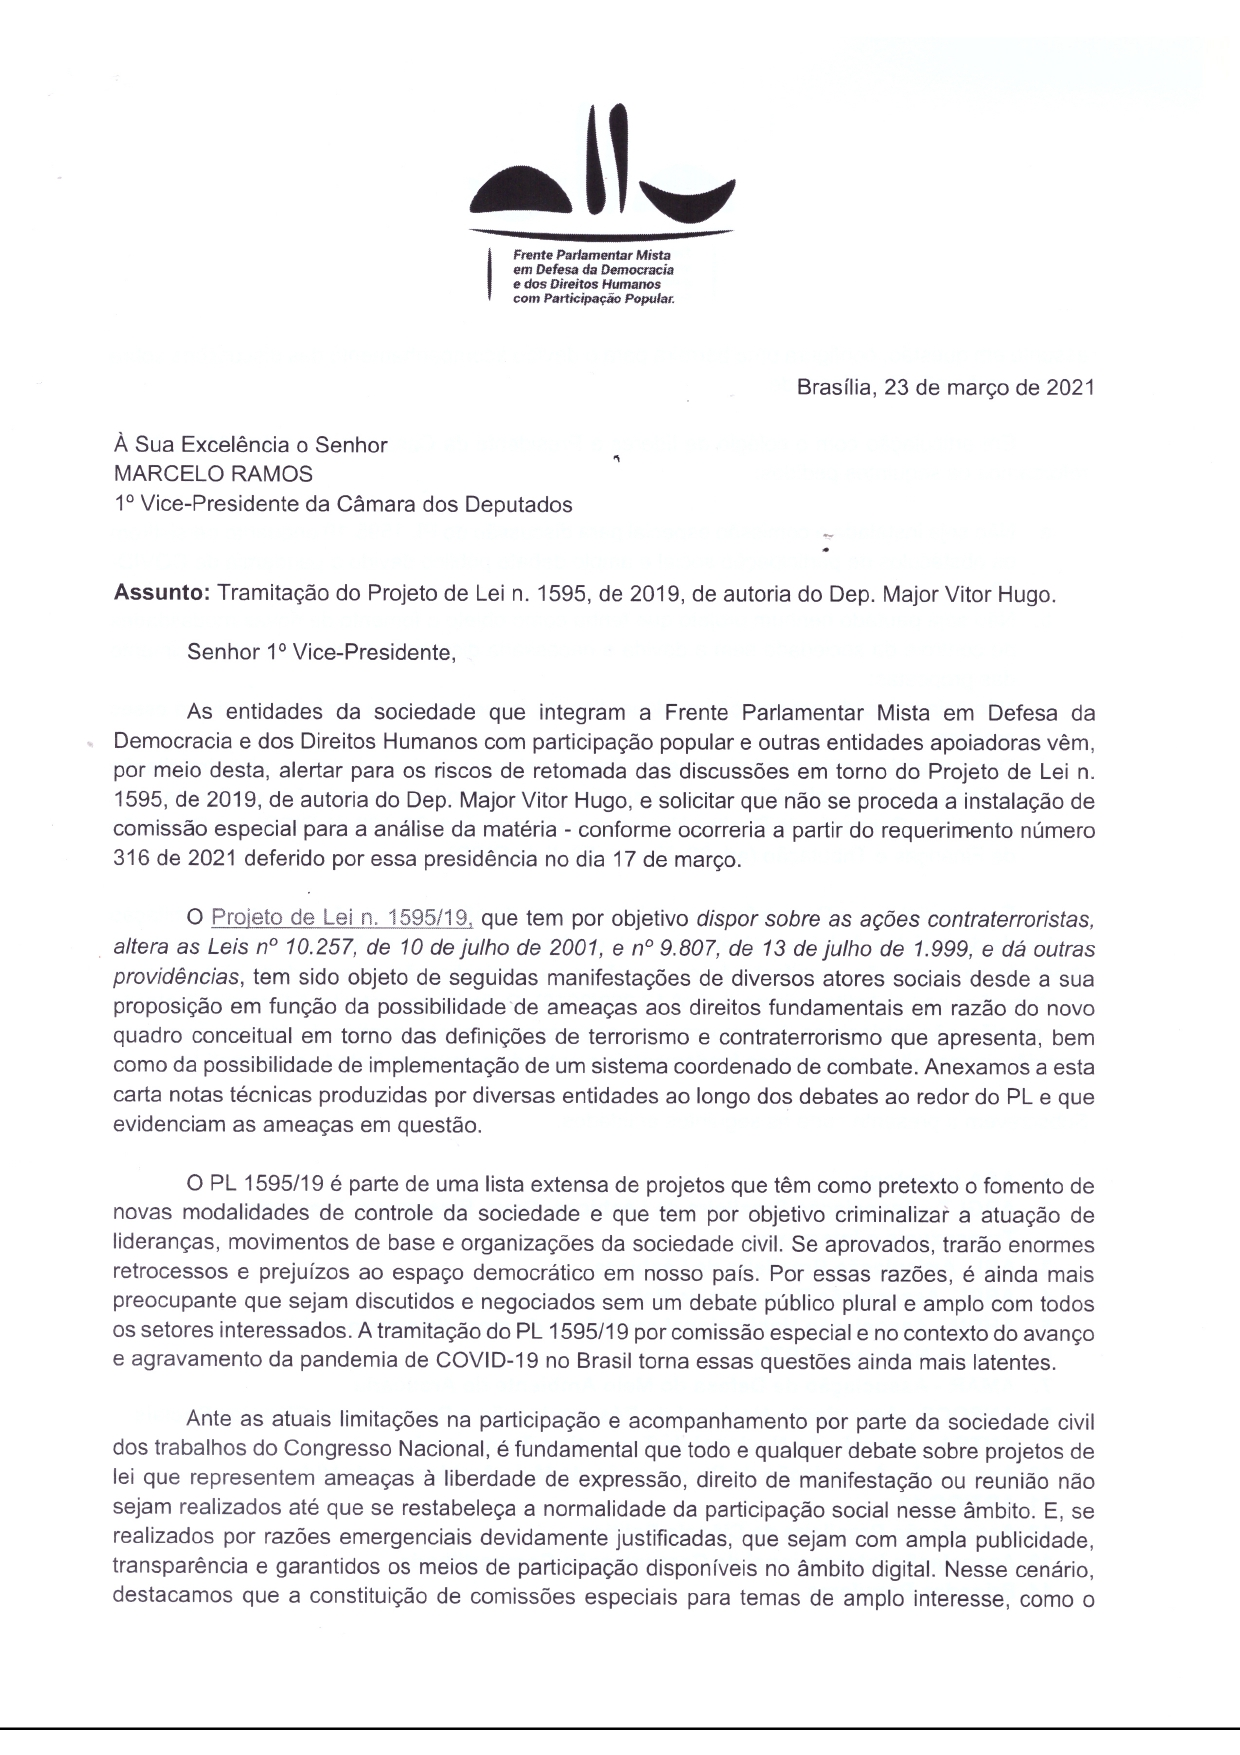 Carta PL 1595.2019.Assinada por Marcelo Ramos (1)_pages-to-jpg-0001